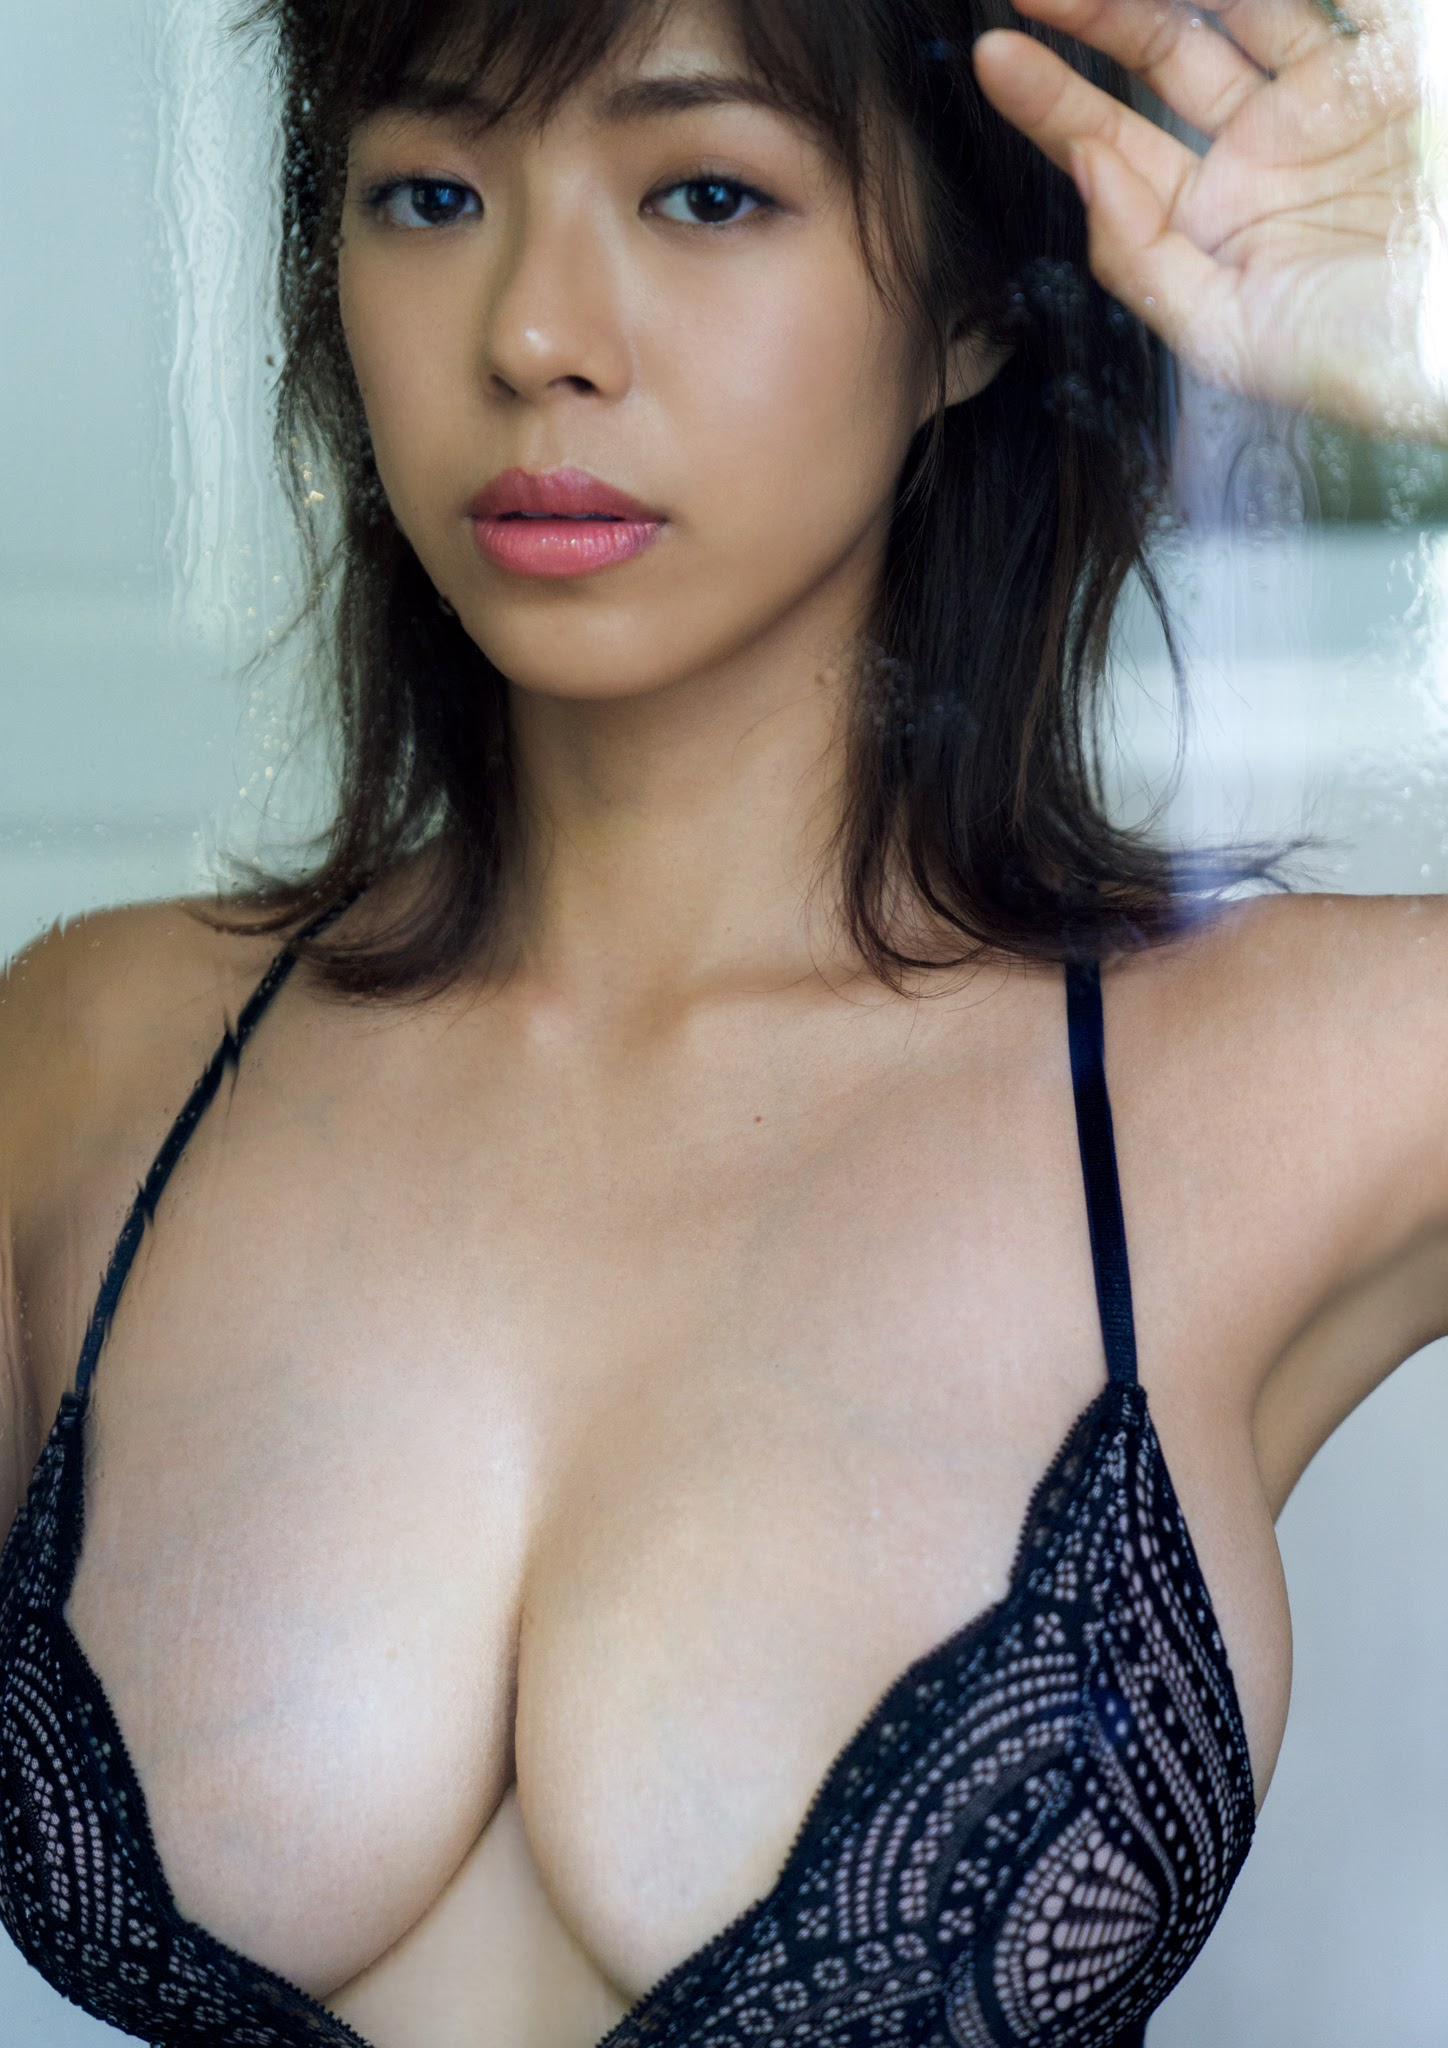 Super body of H cup Minami Wachi 2020 that exposes body and mind in tropical Thailand065